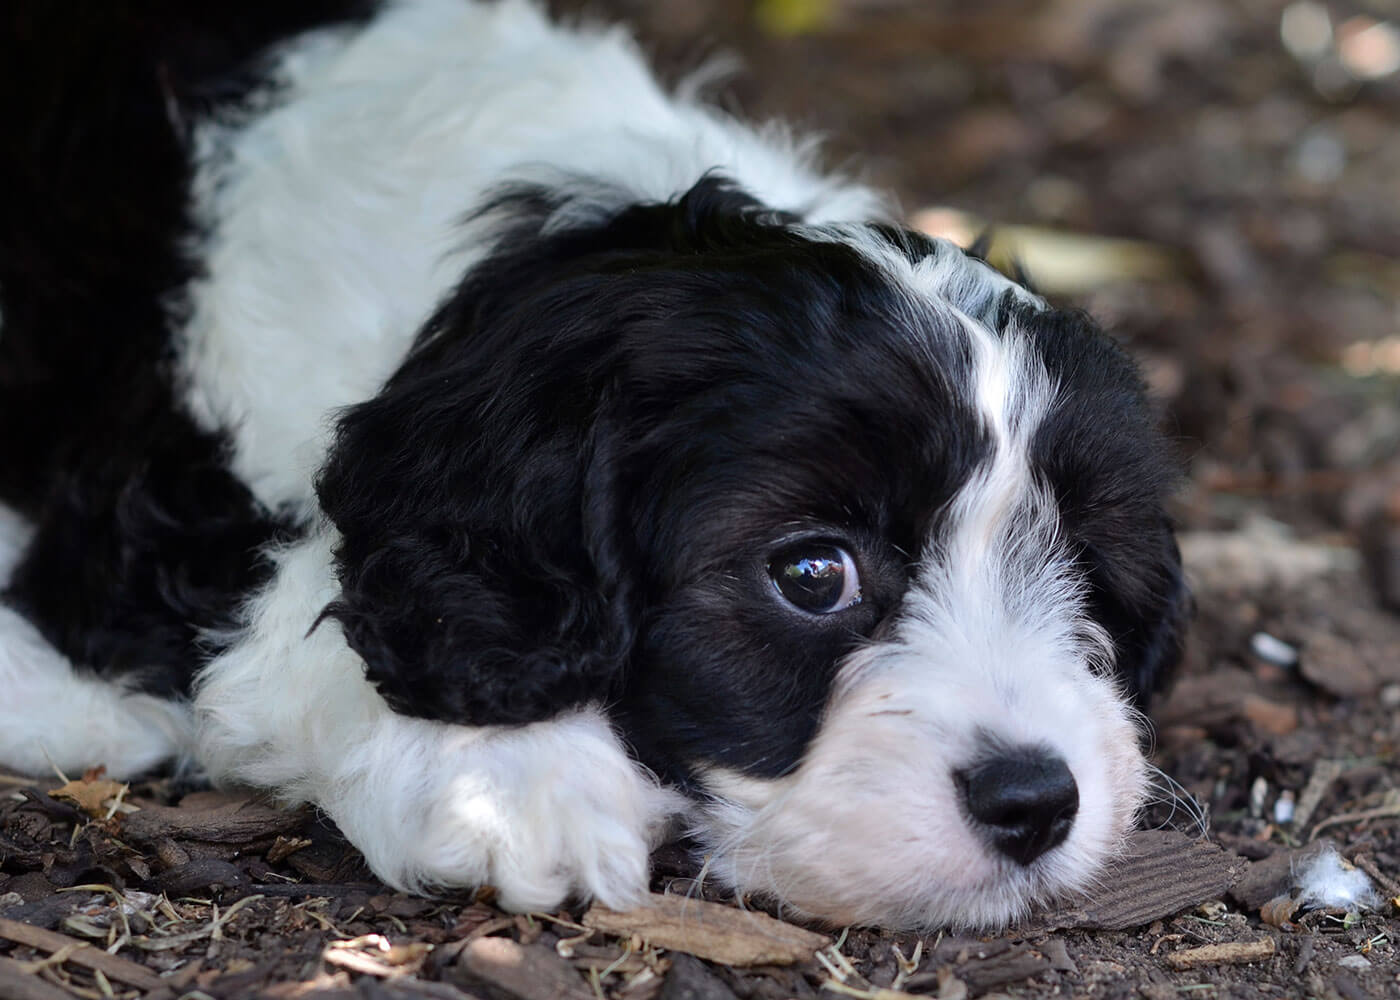 cavapoo dog puppies breed dogs puppy breeds learn puppys pet coloring cavapoos maintenance below